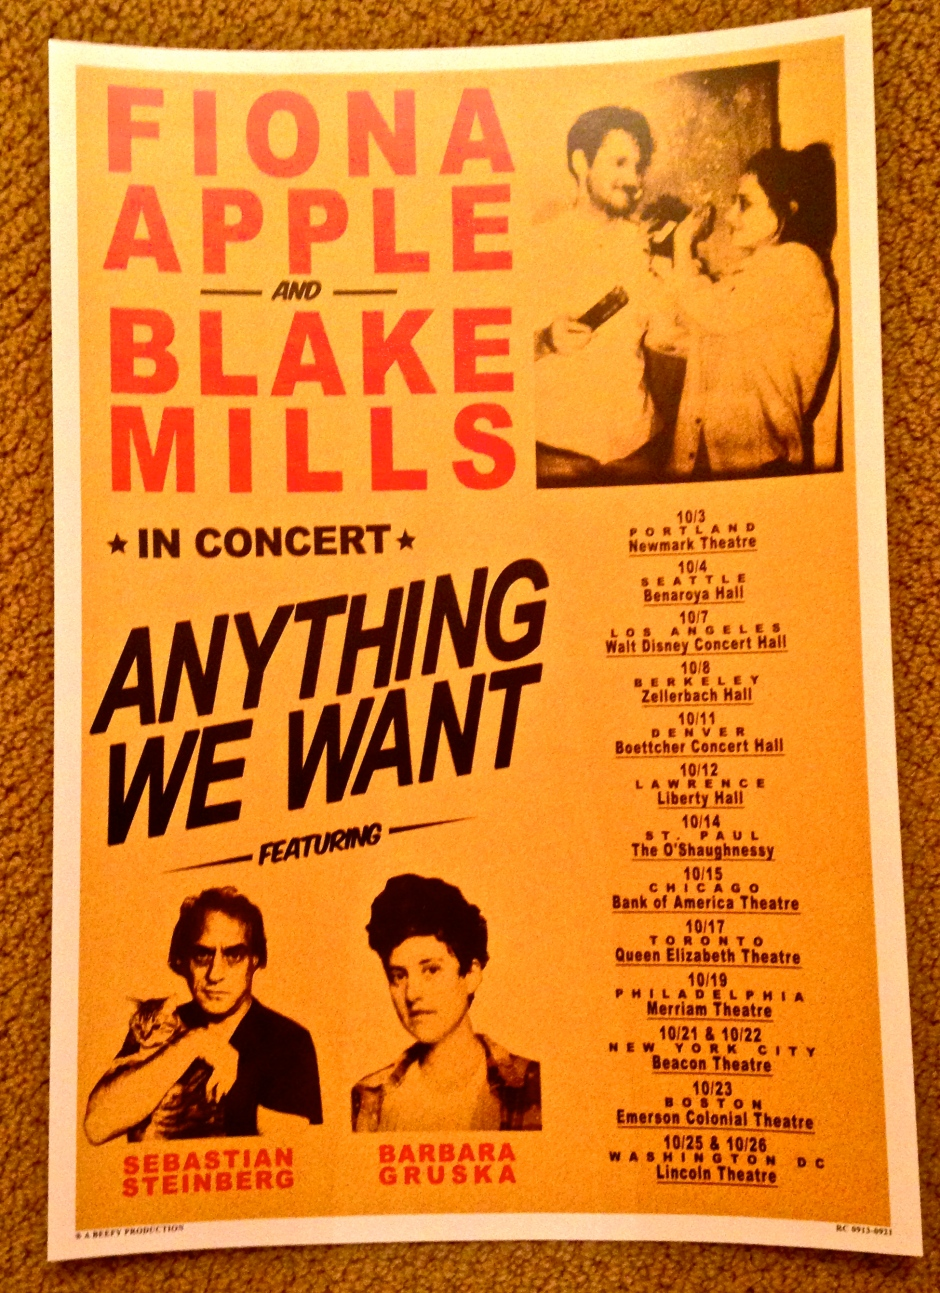 Fiona Apple and Blake Mills tour poster.